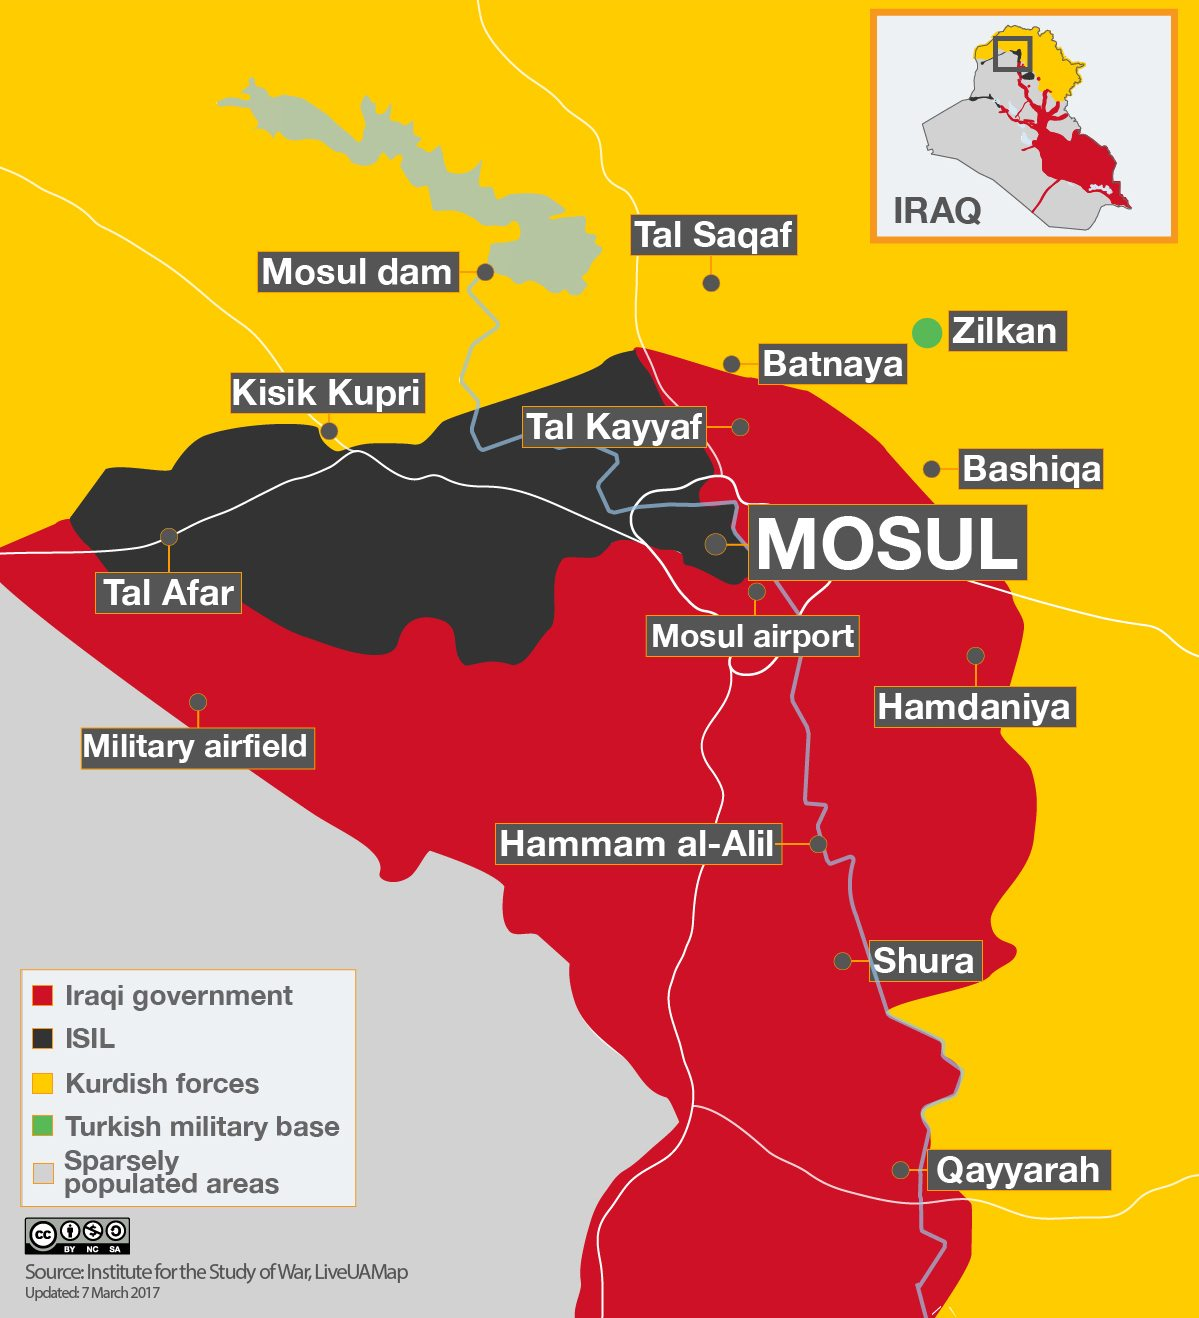 Image Mosul map MAR7